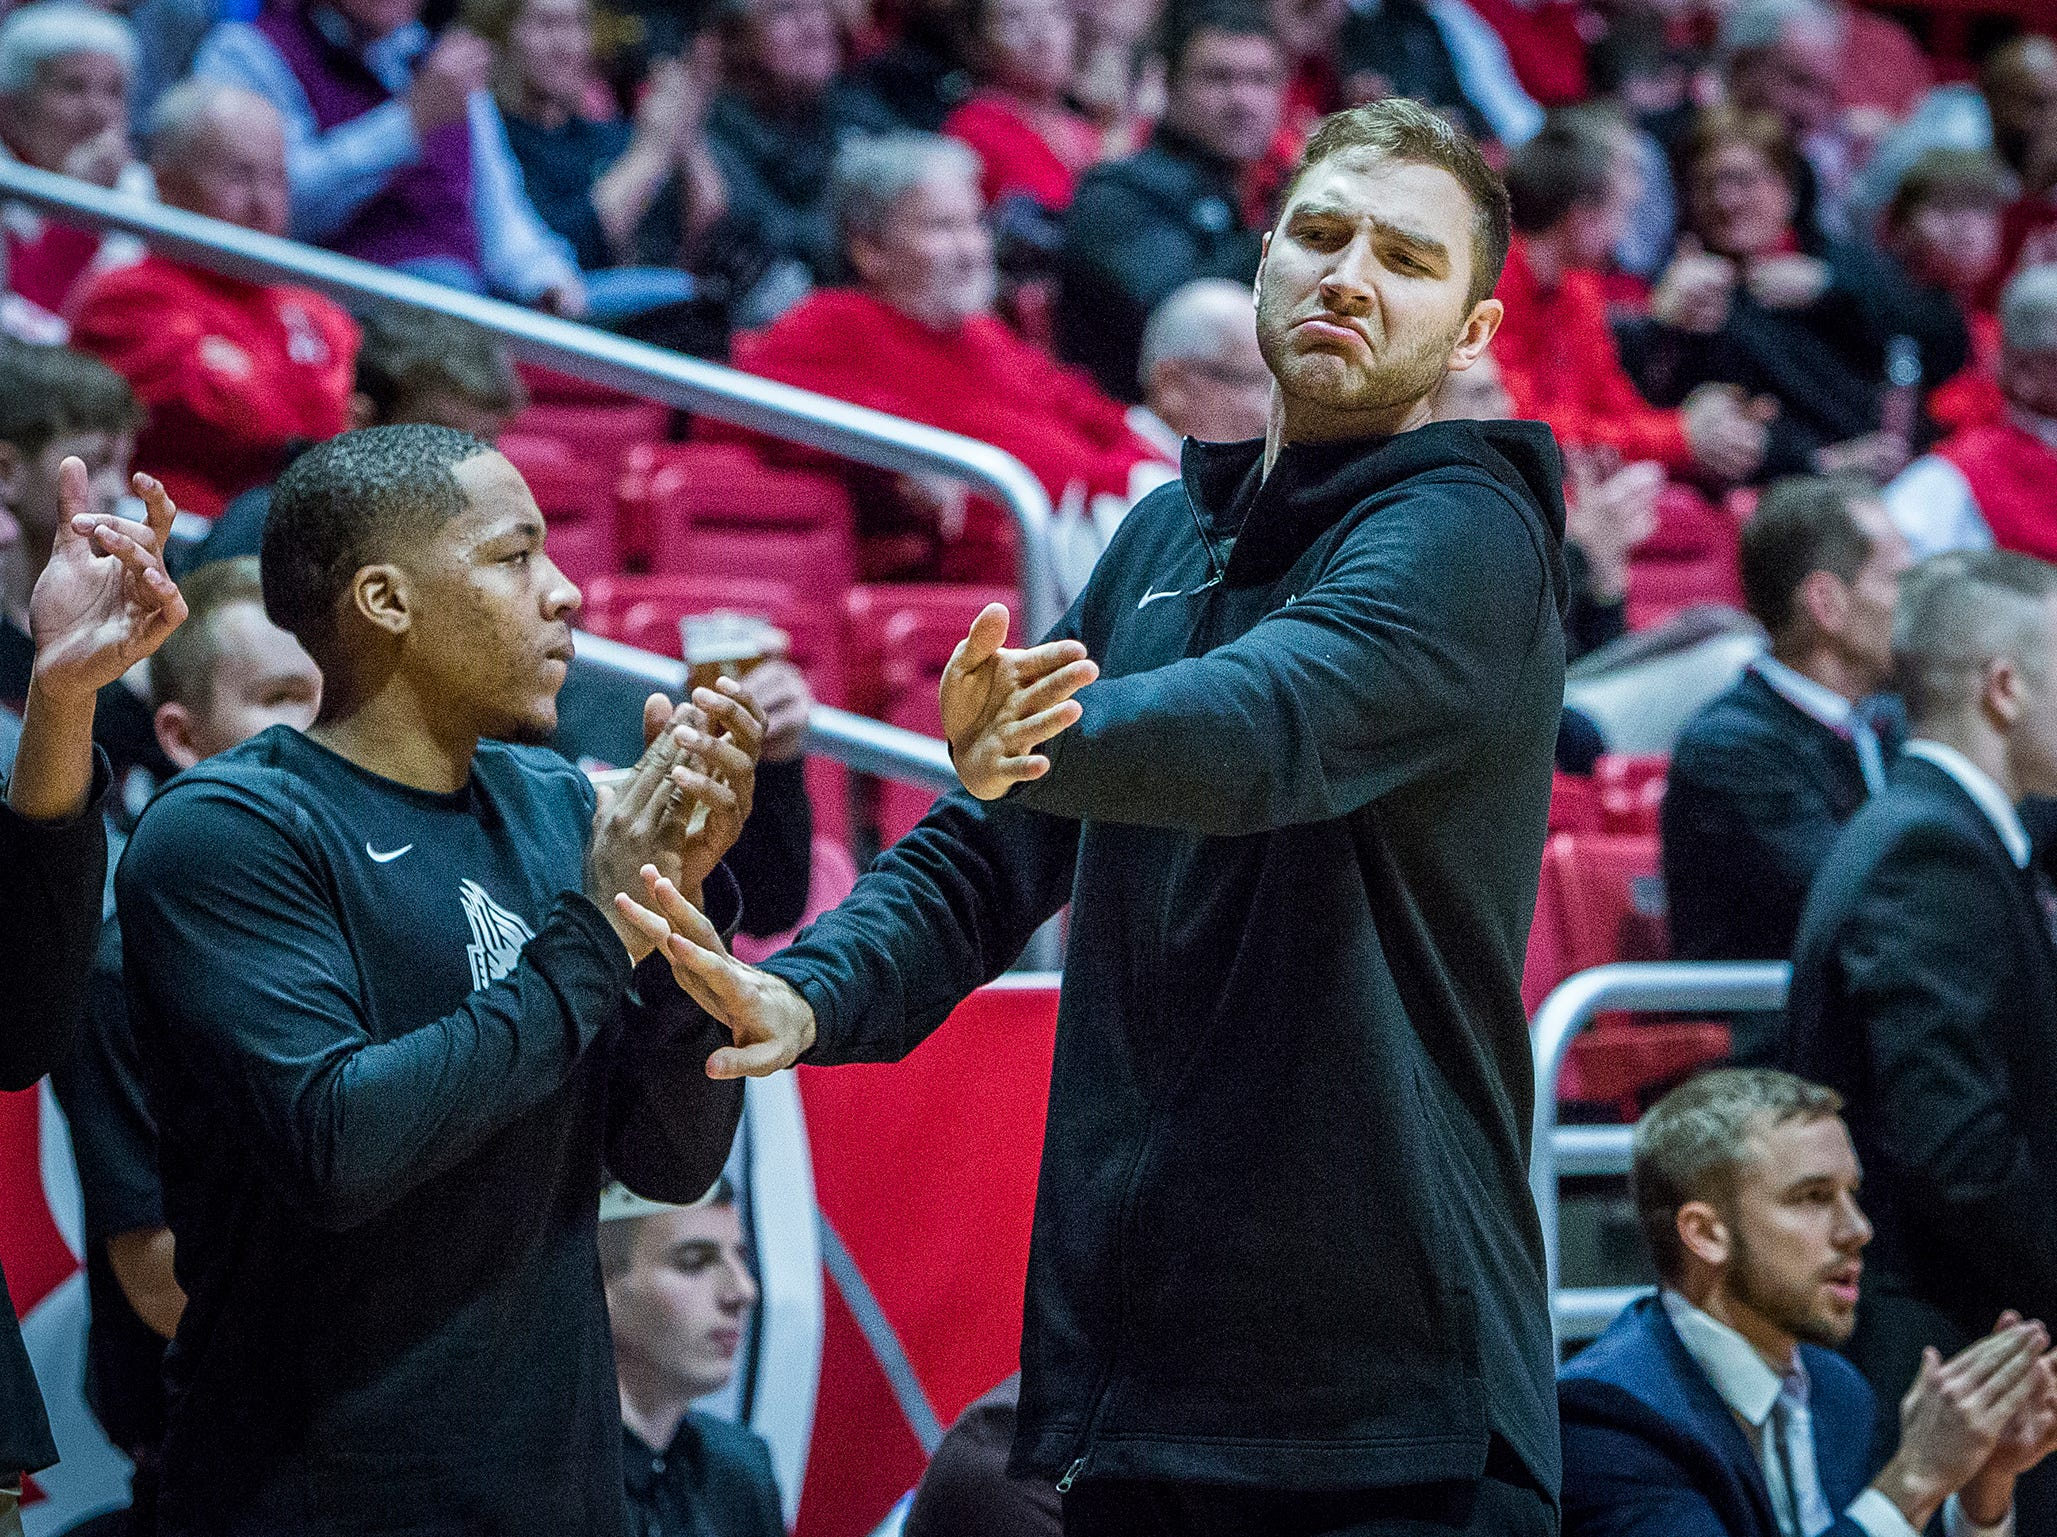 Ball State's Brachen Hazen, right, gestures during the game against Howard at Worthen Arena Thursday, Dec. 20, 2018.